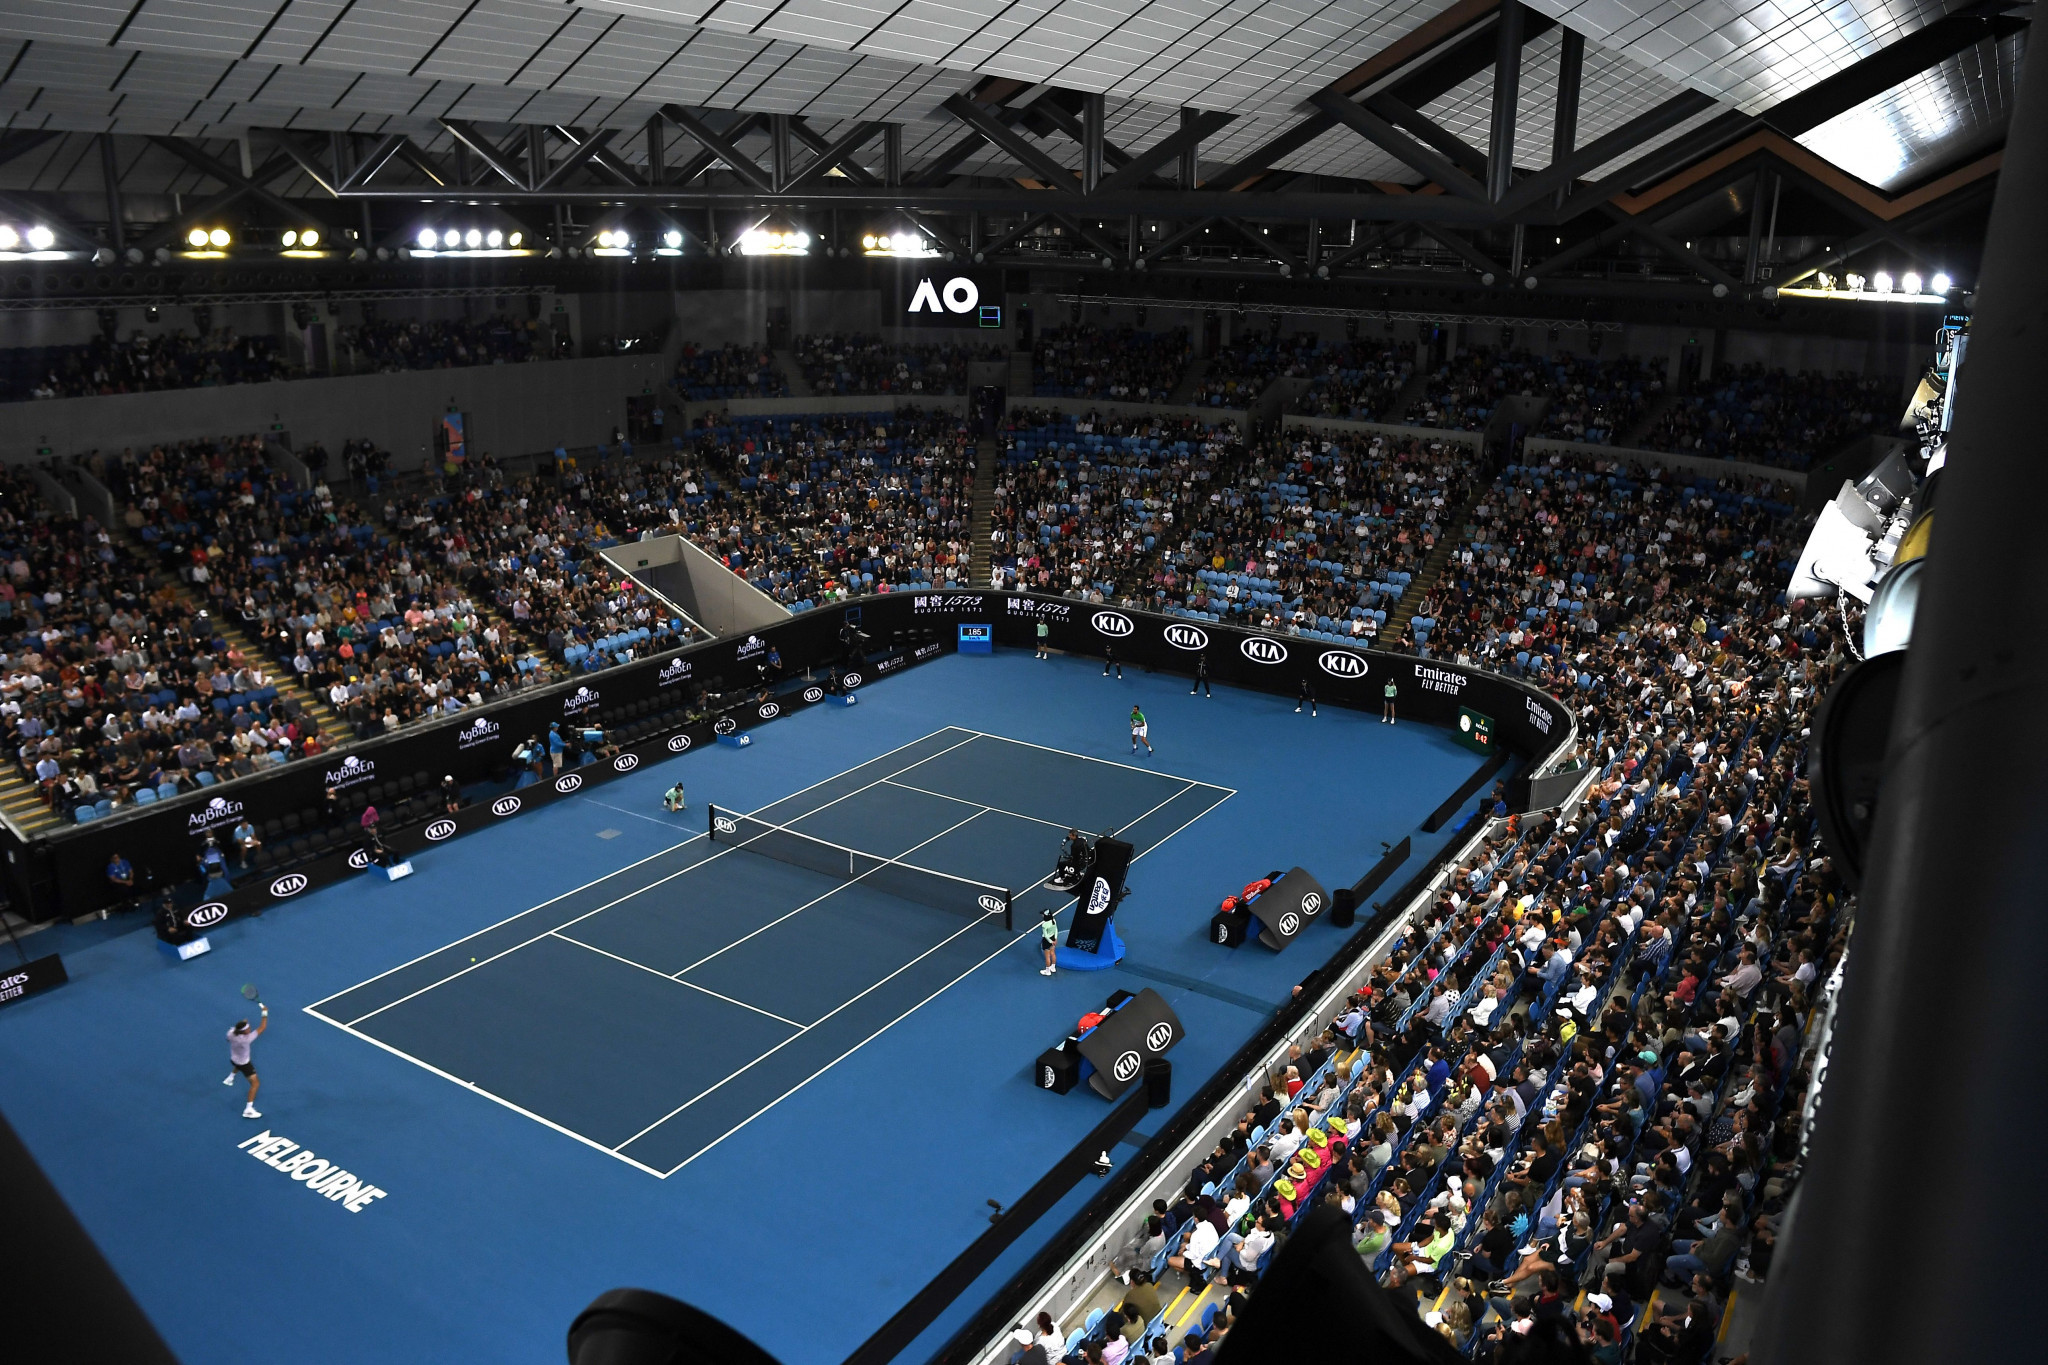 Margaret Court Arena, currently being used for the Australian Open, was due to hold the skateboarding event's semi-finals and finals ©Getty Images